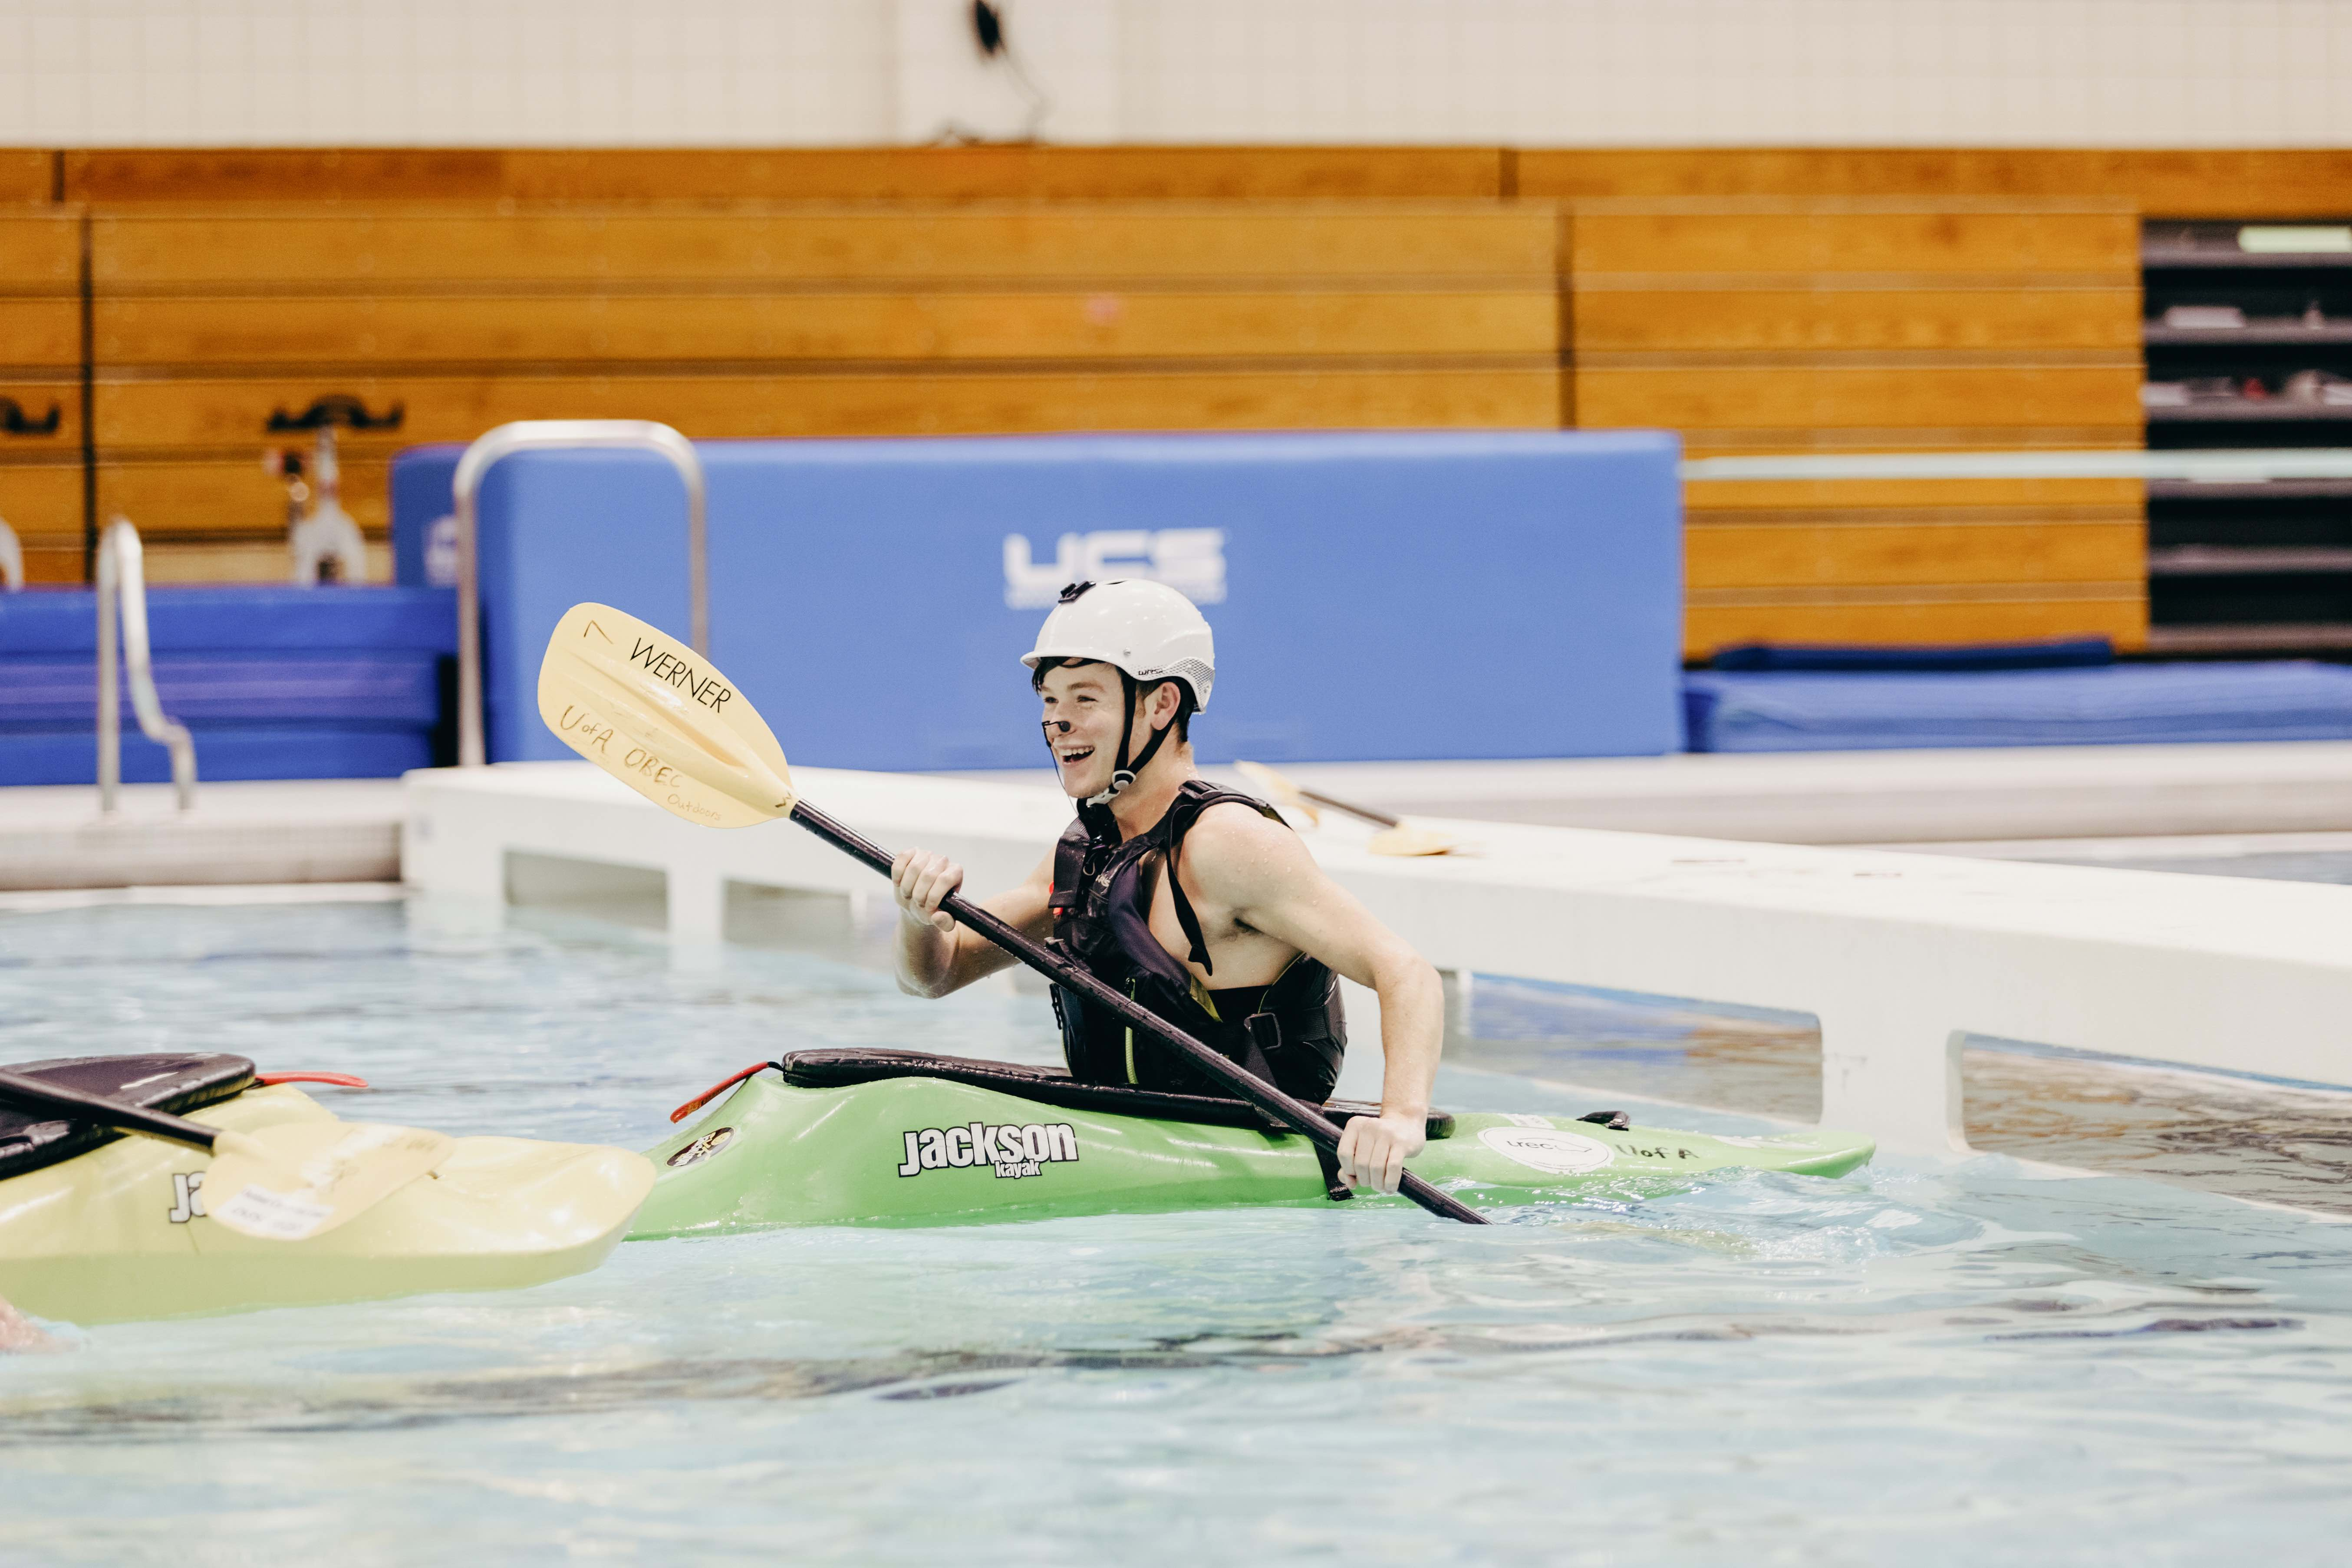 man in whitewater kayak practicing skills in a pool